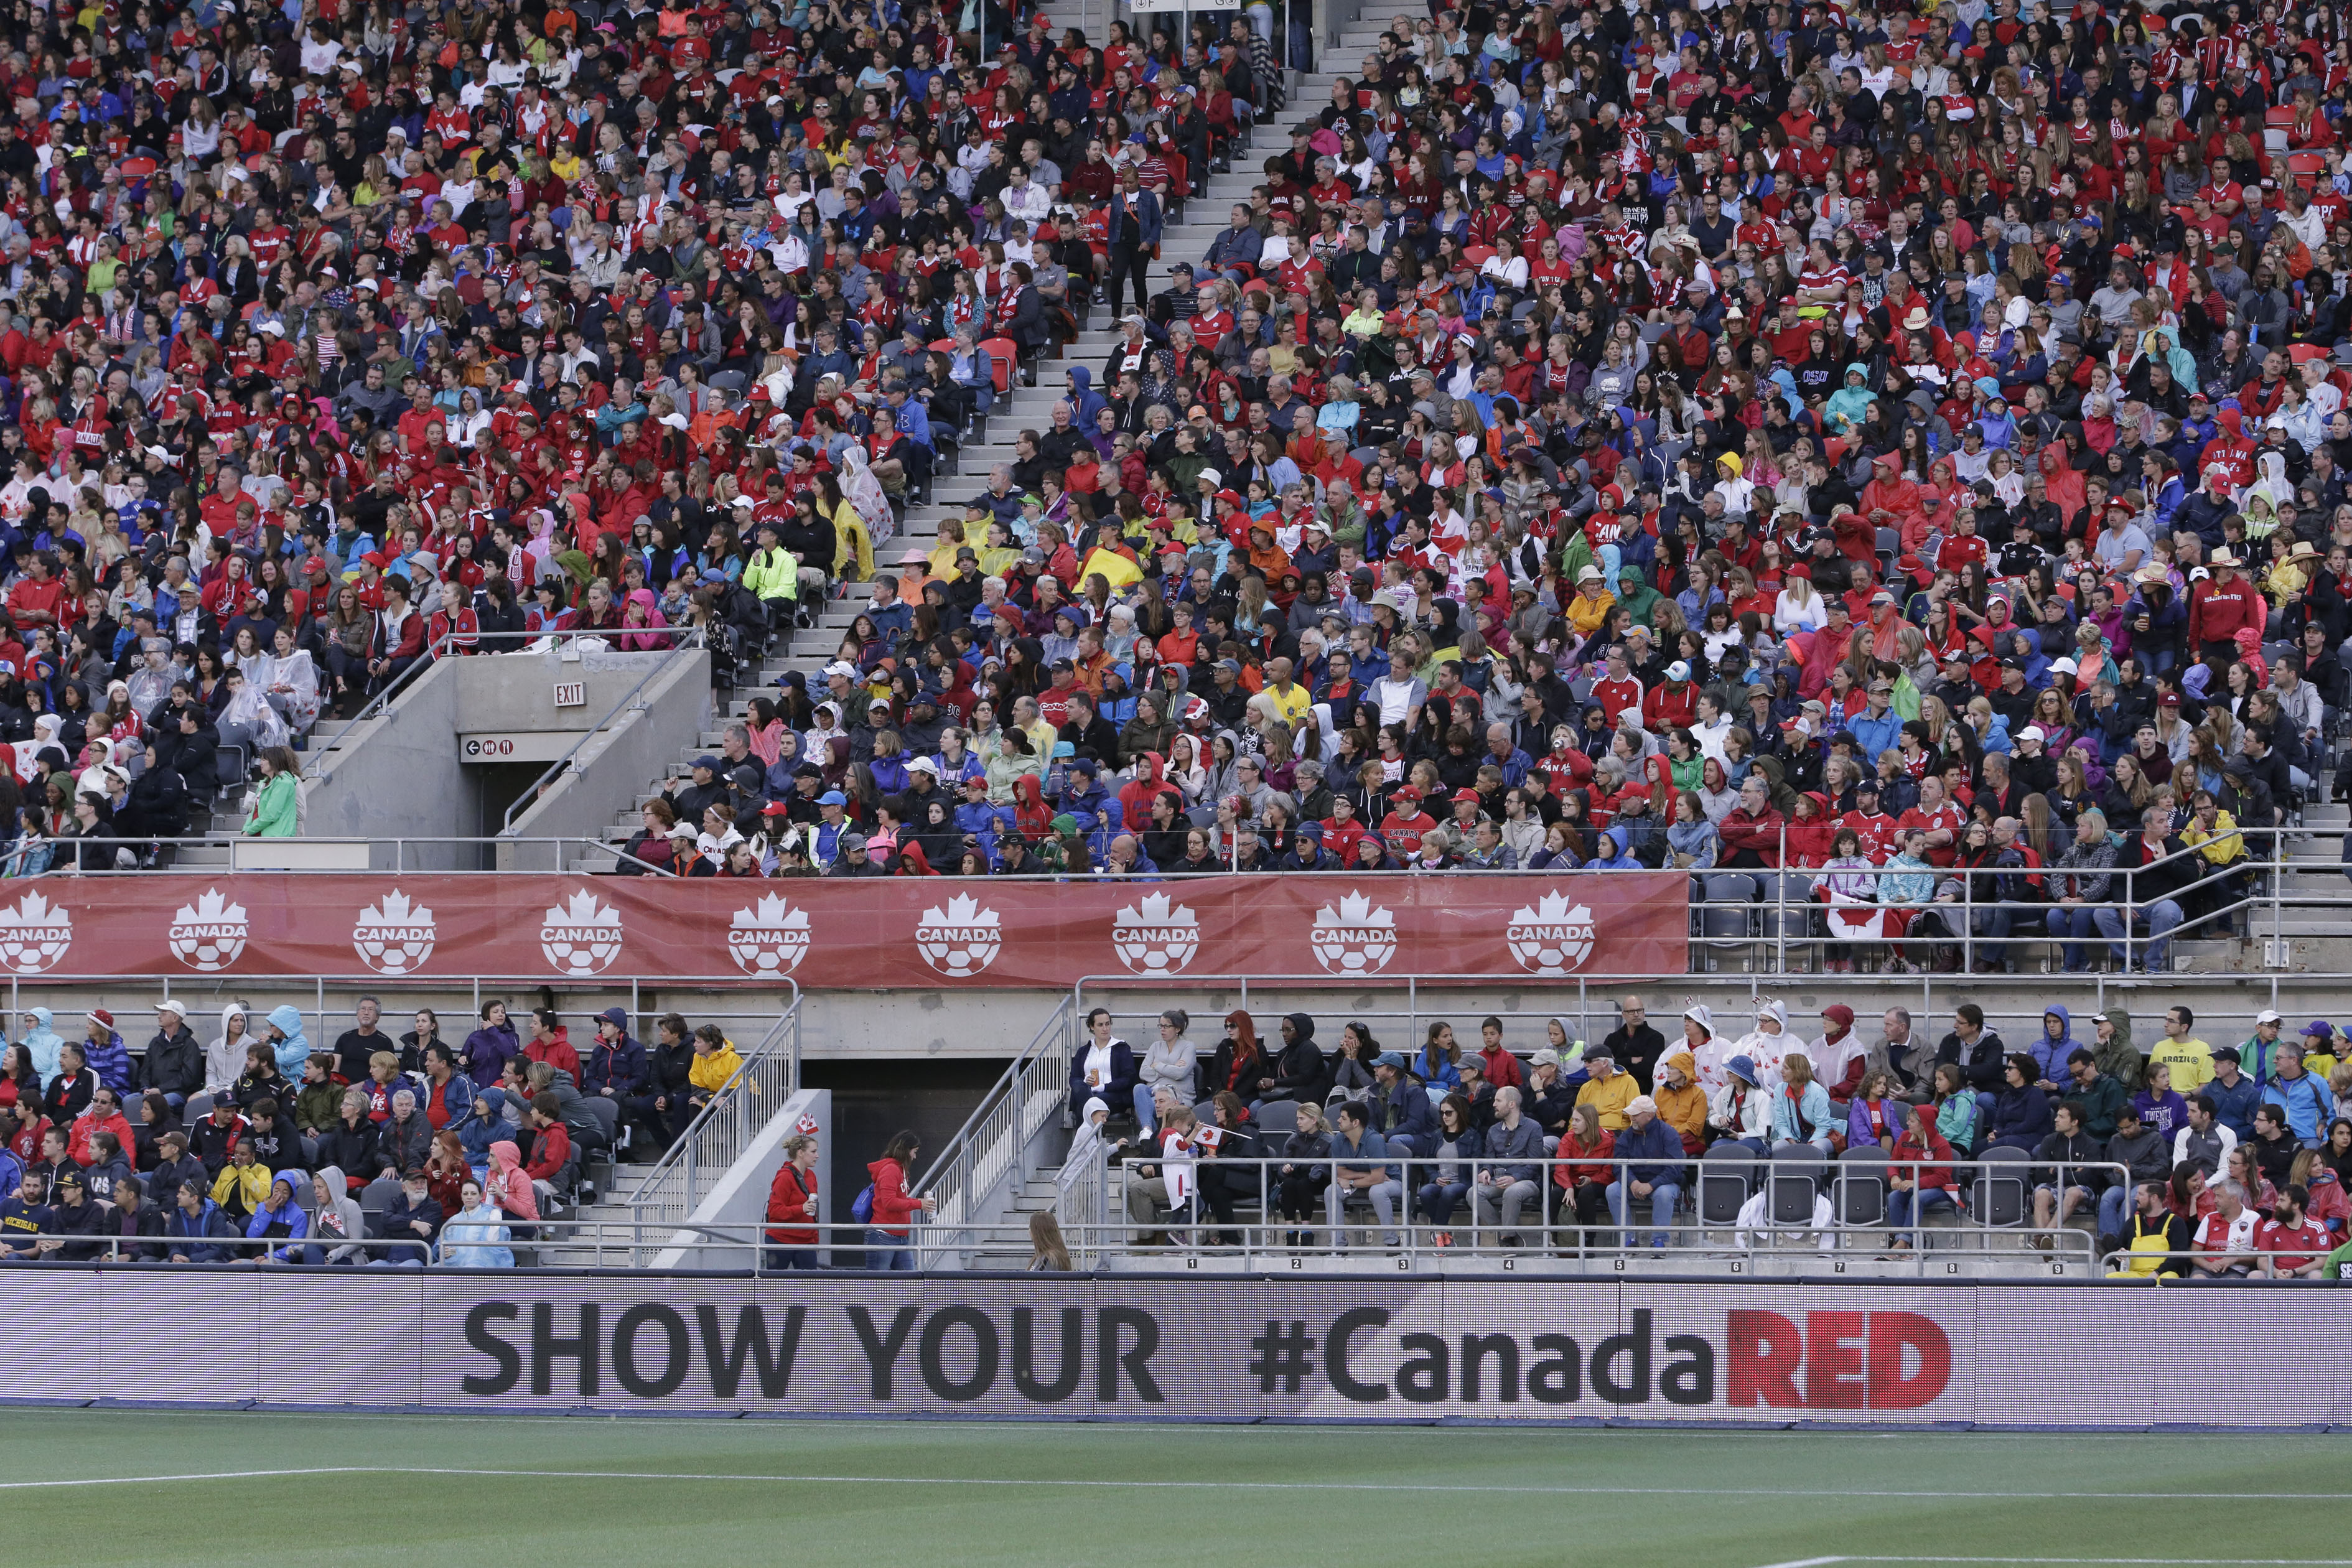 20160607_CANWNT_fans_byMajor133